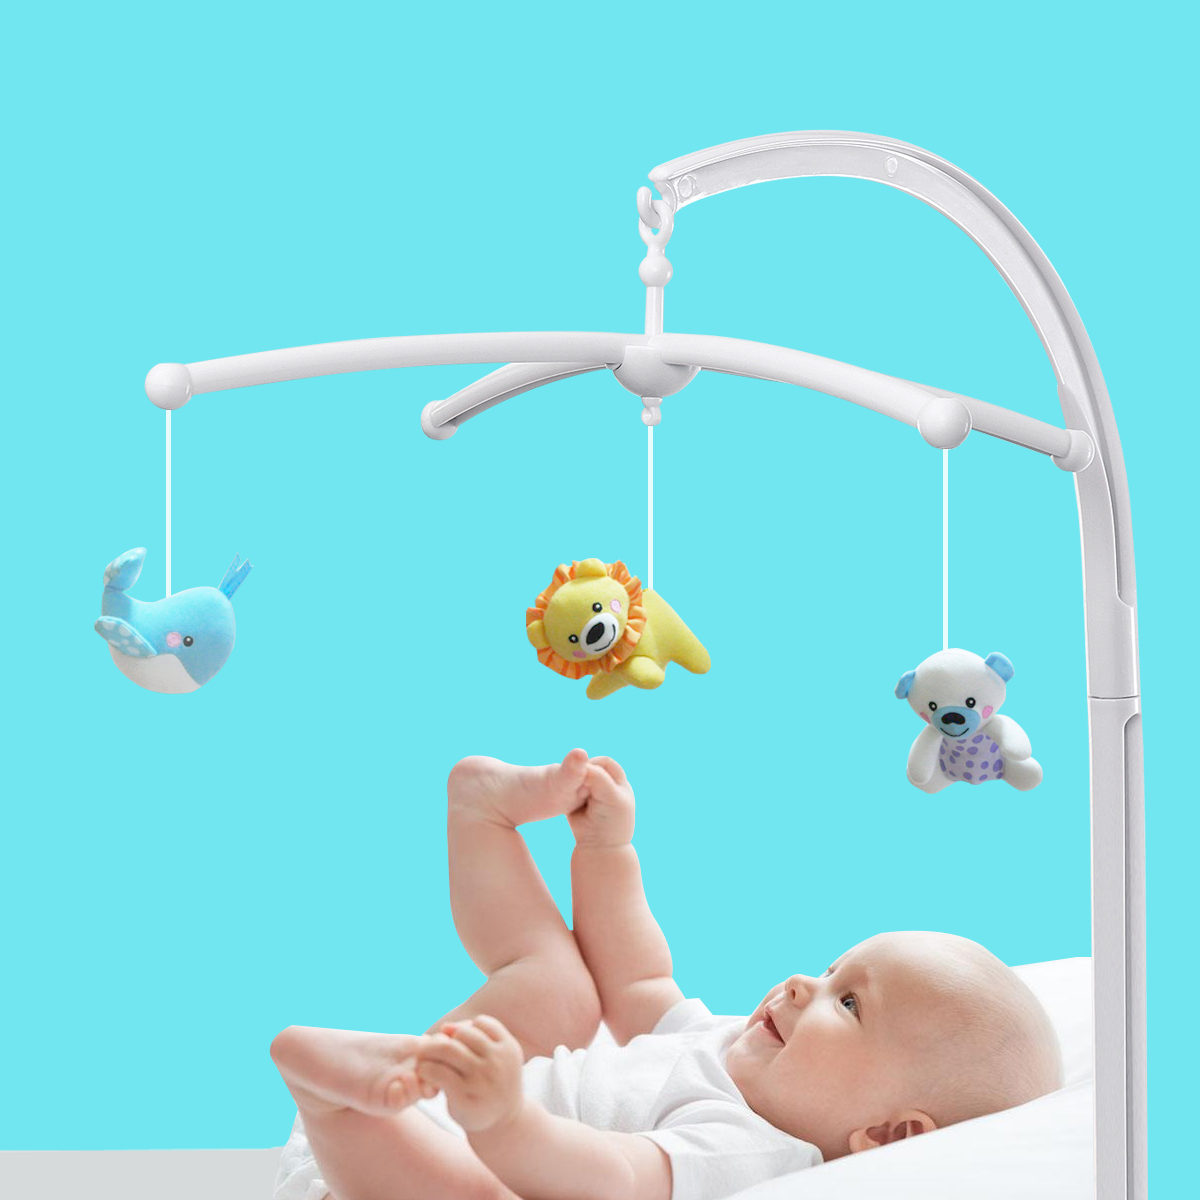 Baby Crib Mobile Bed Bell Holder Arm Bracket Battery-operated Musical Mobile Box